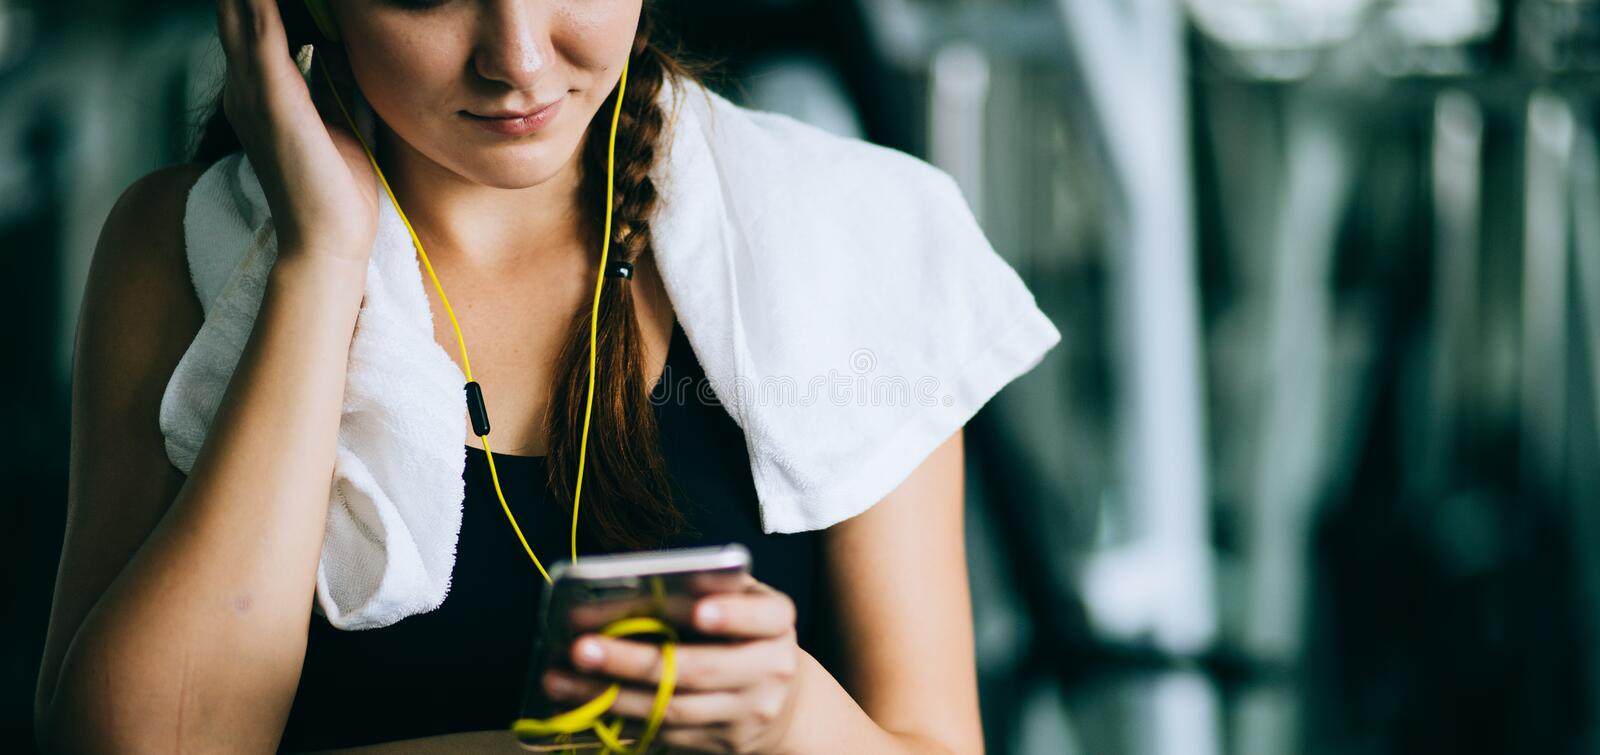 Attractive woman biking in the gym, exercising legs doing cardio workout cycling bikes. royalty free stock image